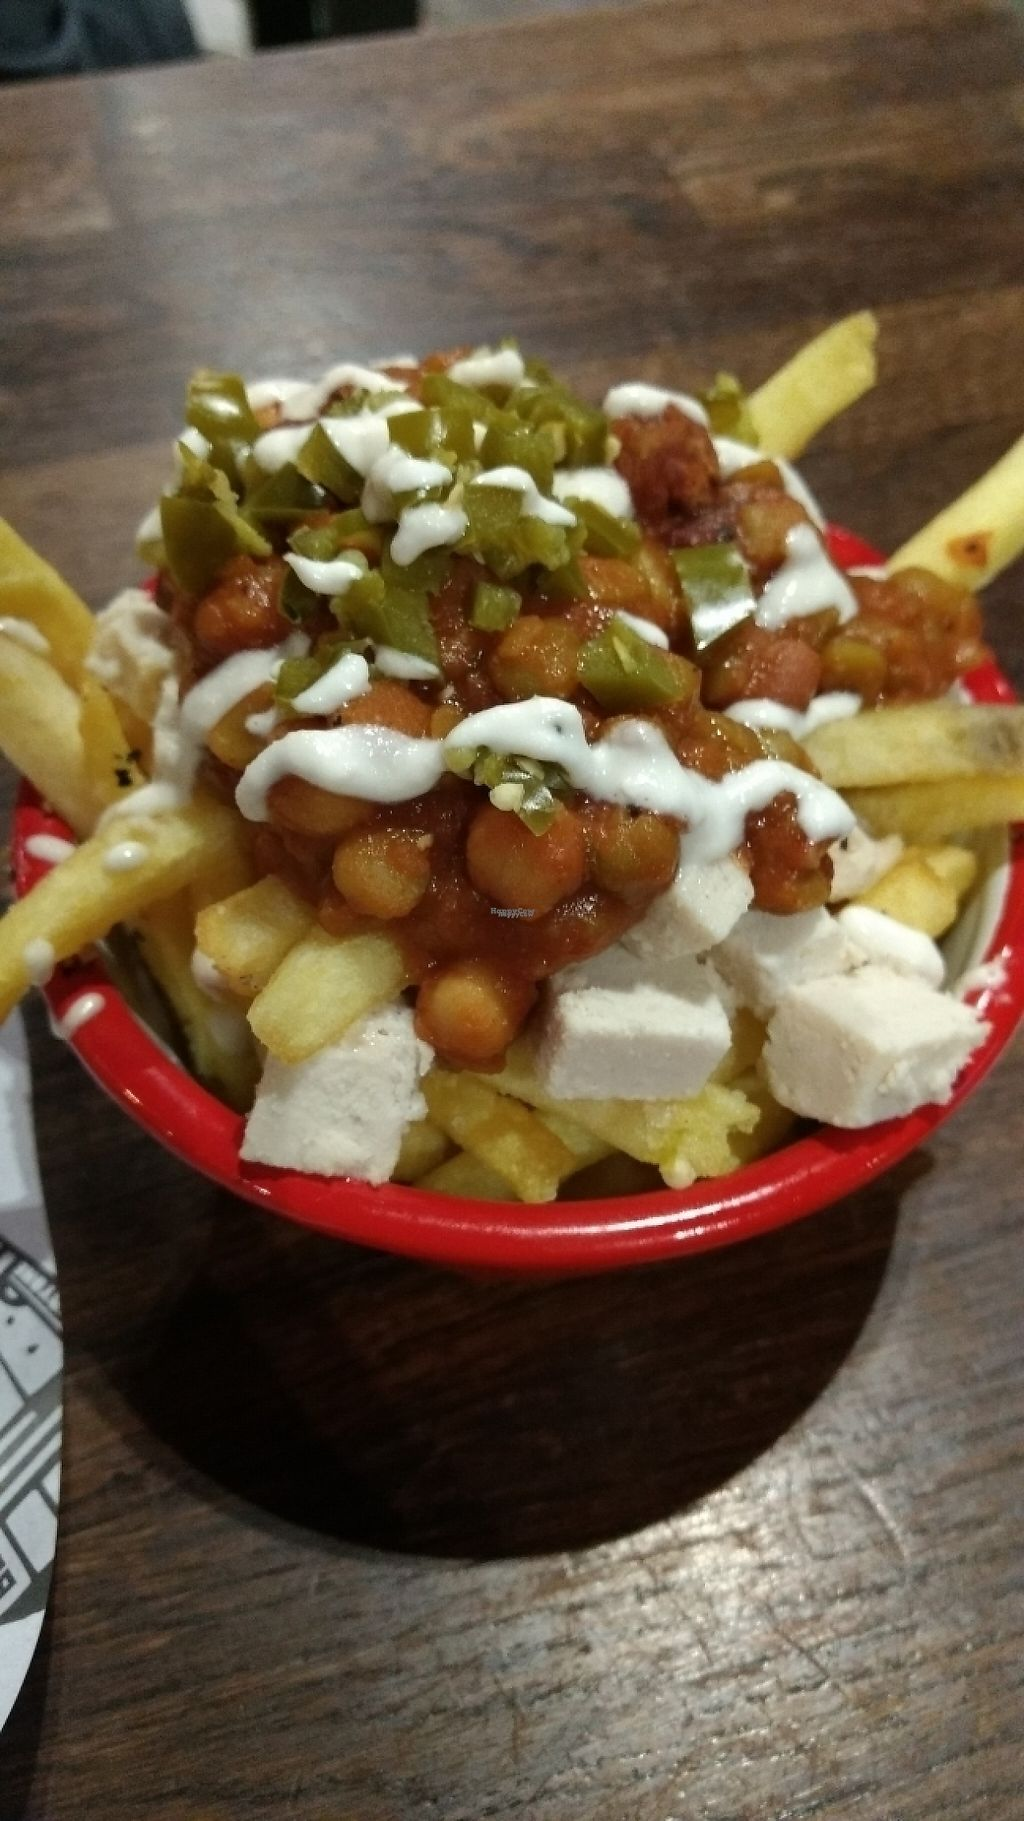 """Photo of Bloc Bar Glasgow  by <a href=""""/members/profile/craigmc"""">craigmc</a> <br/>chip thing with beany topping <br/> March 27, 2017  - <a href='/contact/abuse/image/78988/241779'>Report</a>"""